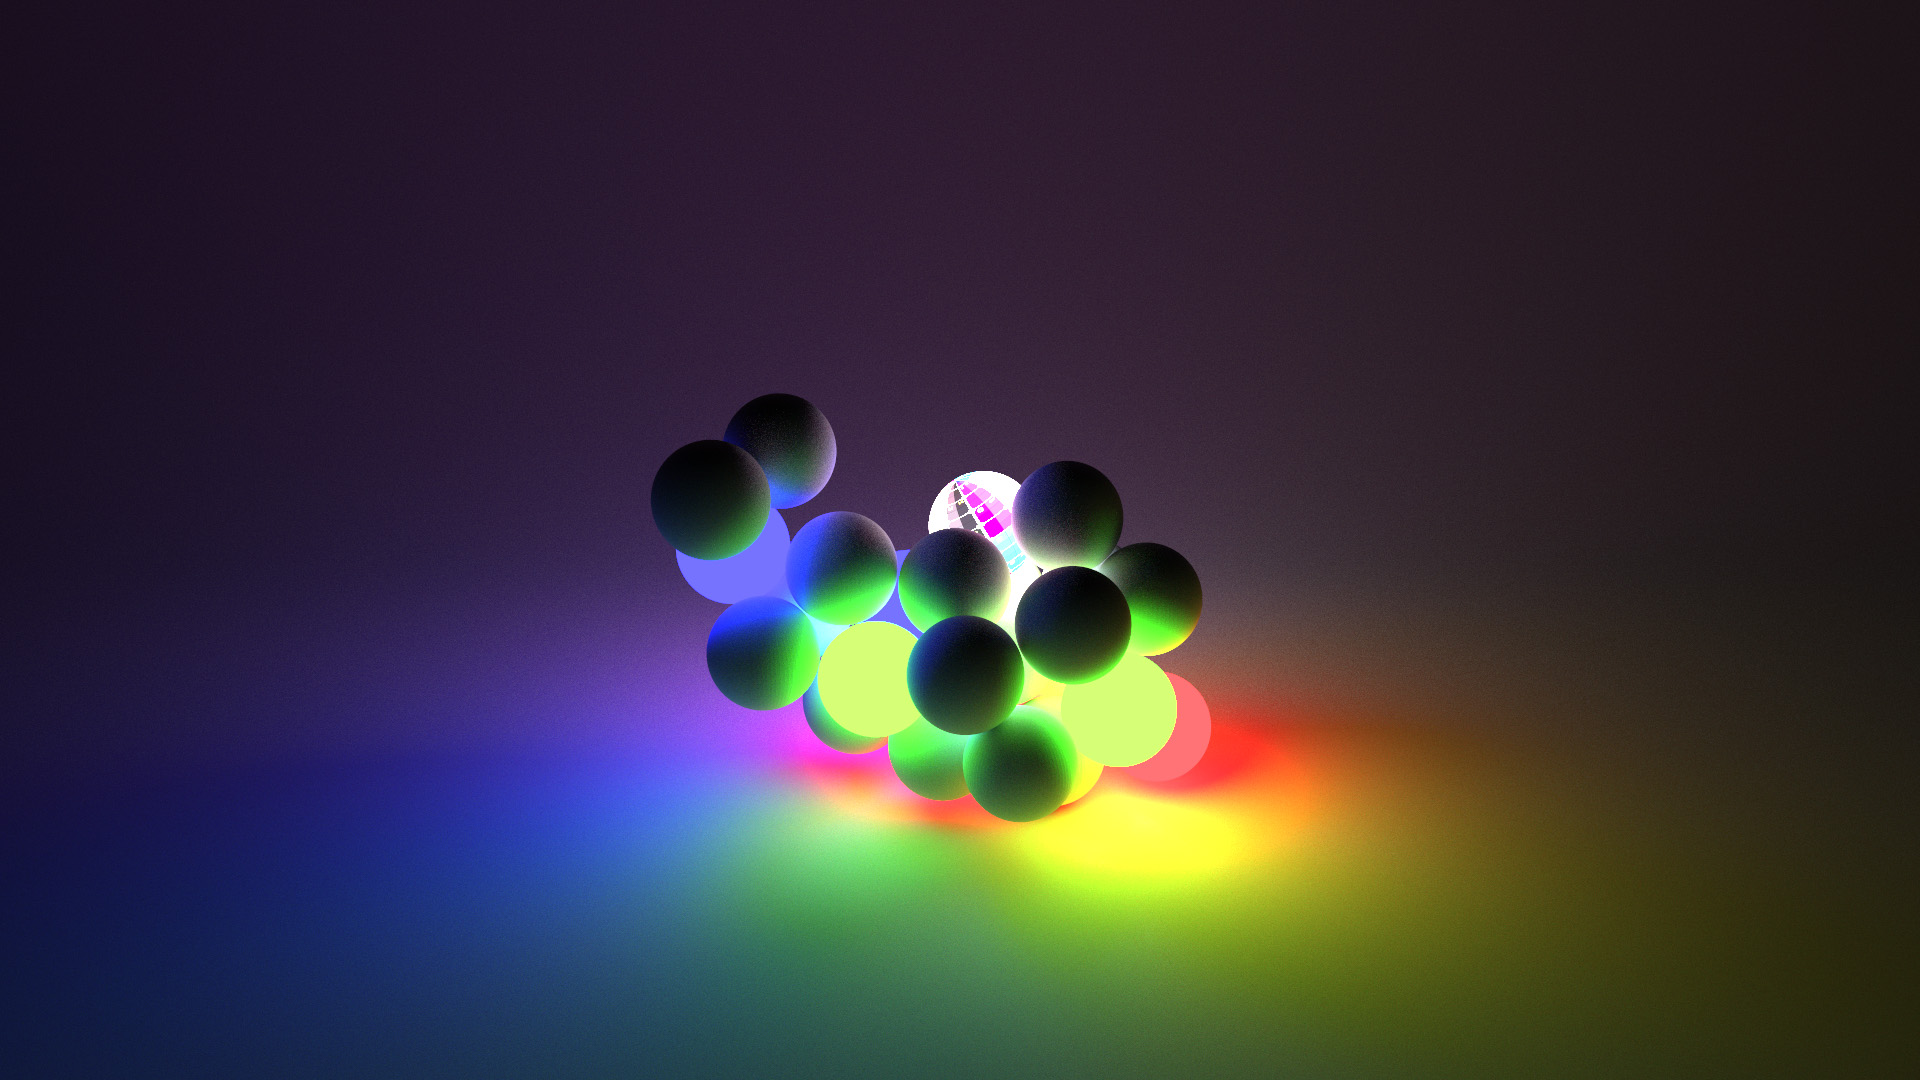 Same spheres as above, sans bunny. Rendered using BDPT.